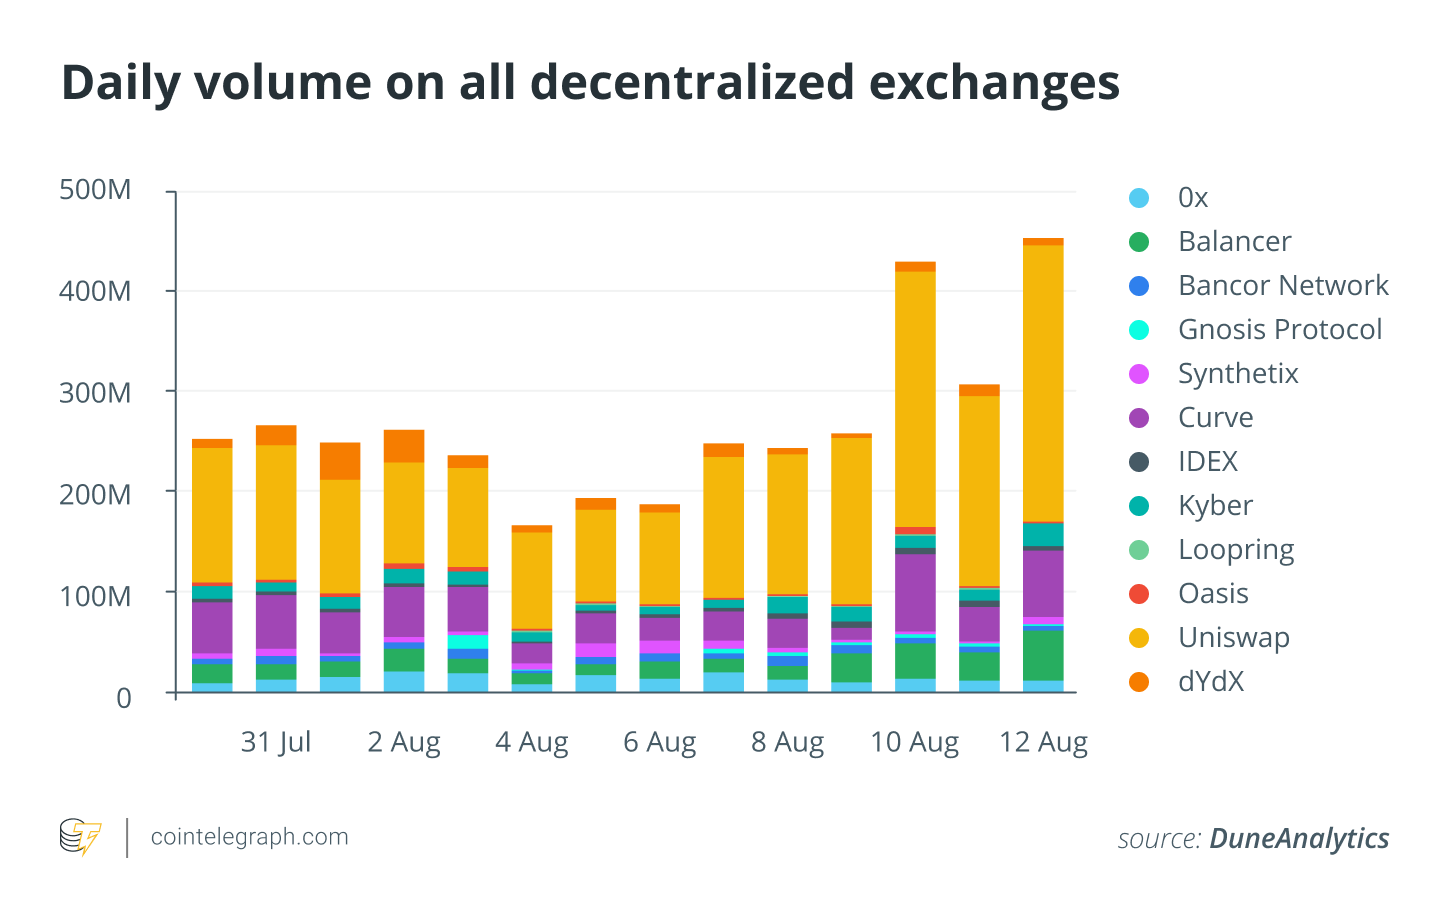 Daily volume on all decentralized exchanges